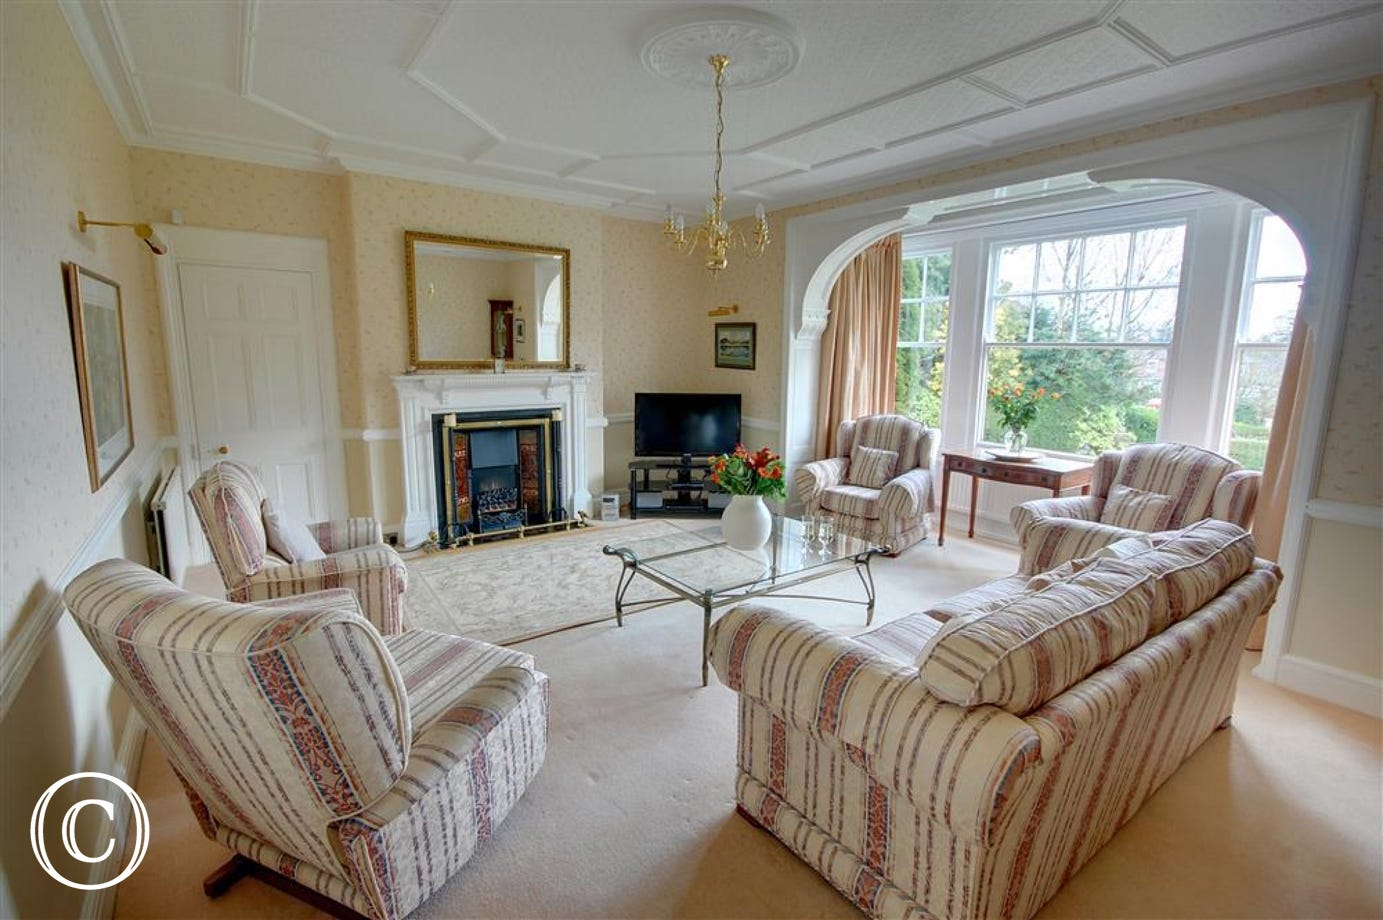 The Lounge is situated at the front of the property and includes a feature fireplace.